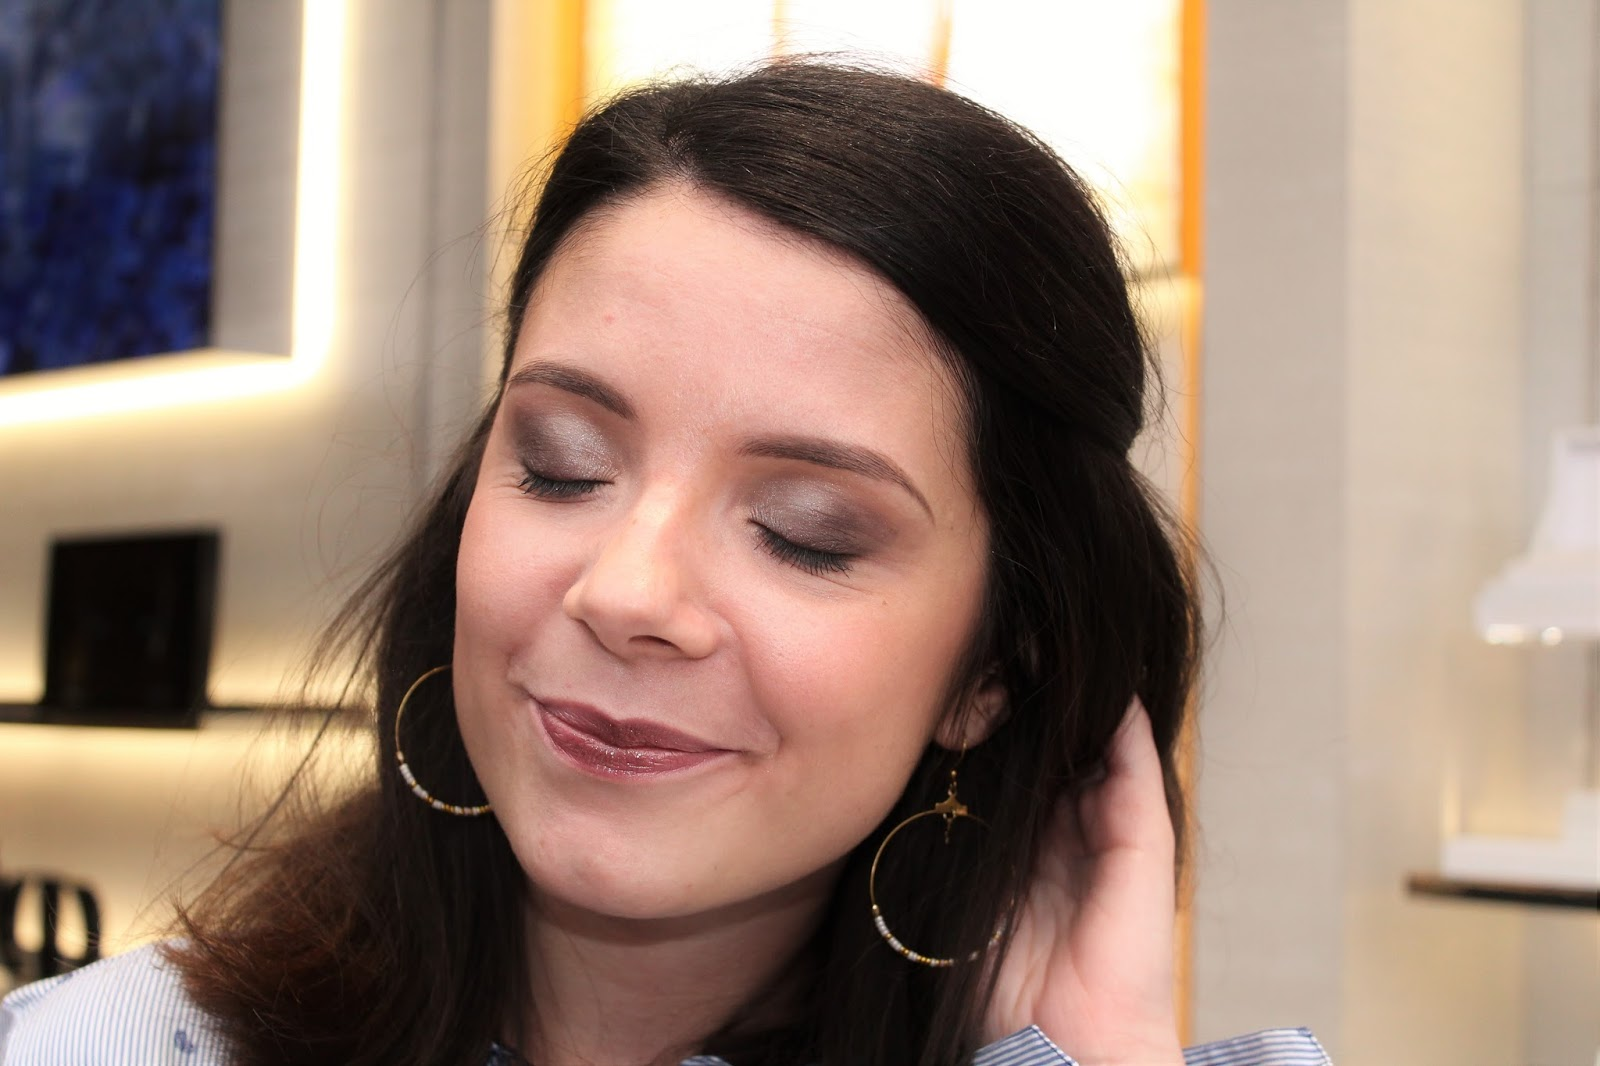 make up makeup mu mua maquillage dior ambassadeurparly2 ambassadeur parly 2 parly2 tuto tutoriel vidéo leçon comment se maquiller apprendre parisian sky skyline backstage pro rosy glow mascara diorshow diorskin capture dreamskin one essential nude quotidien facile les gommettes de melo melo gommette melogommette le chesnay boutique corner